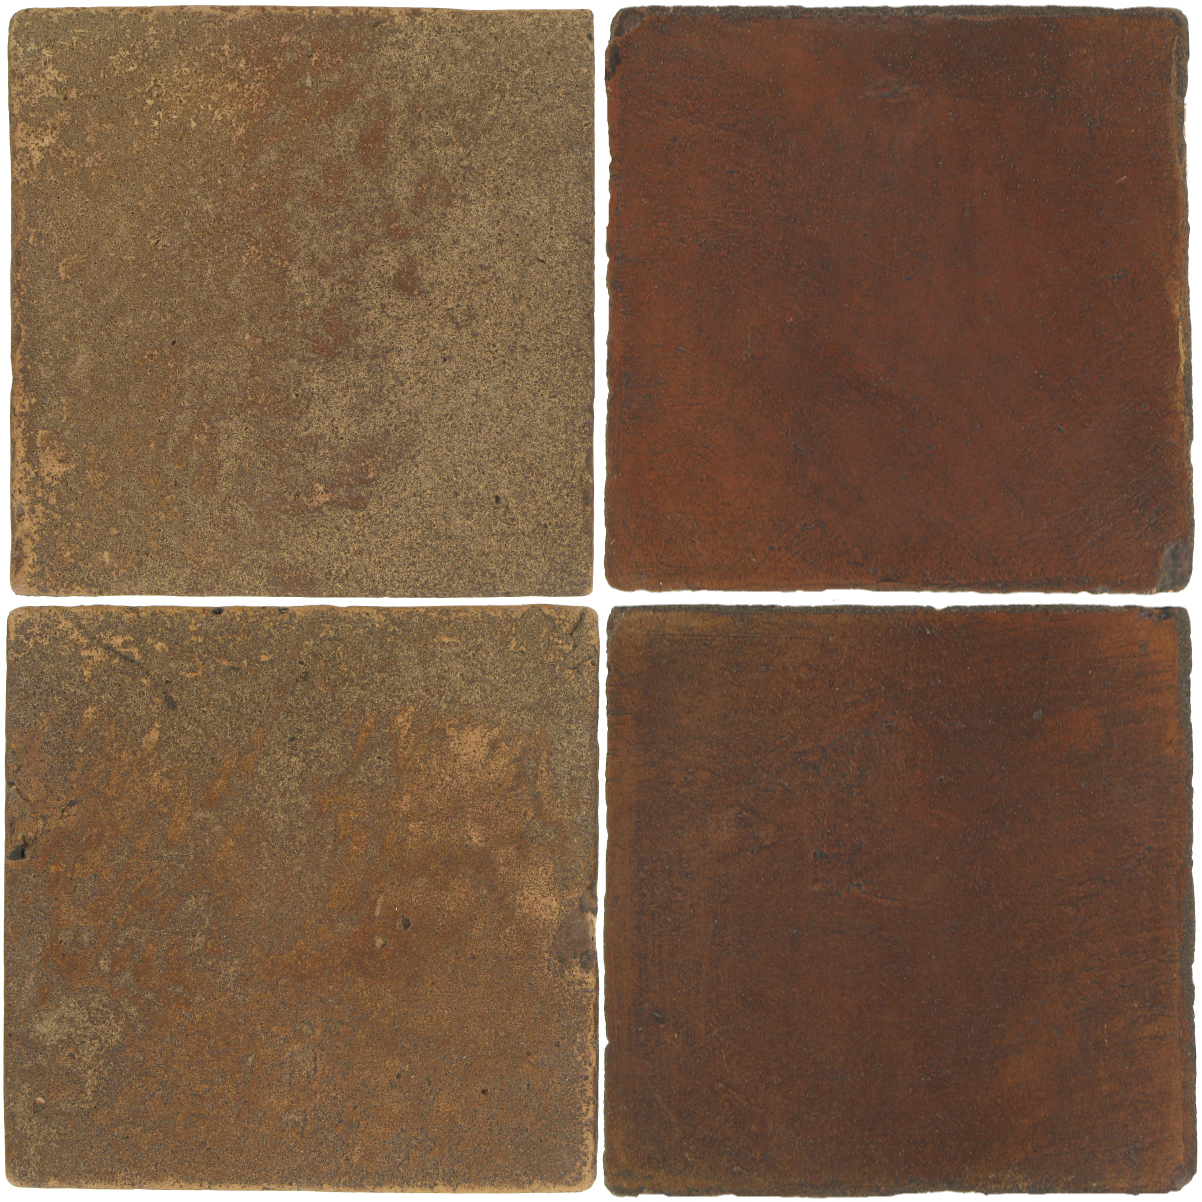 Pedralbes Antique Terracotta  2 Color Combinations  VTG-PSCM Camel Brown + OHS-PSOW Old World